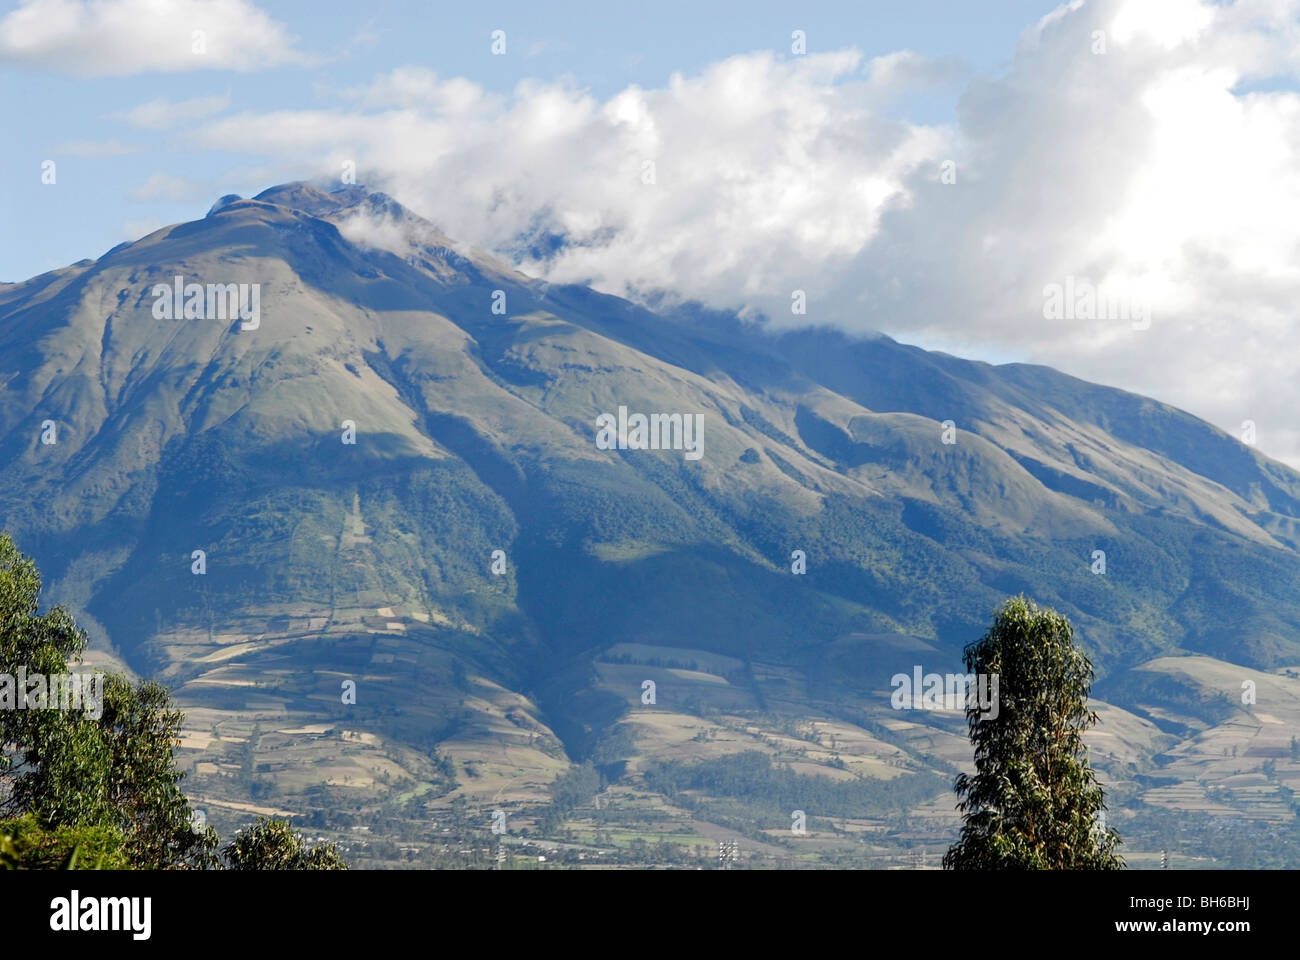 Ecuador, Yuarmachoa, majestic view of mountain range covered with clouds - Stock Image